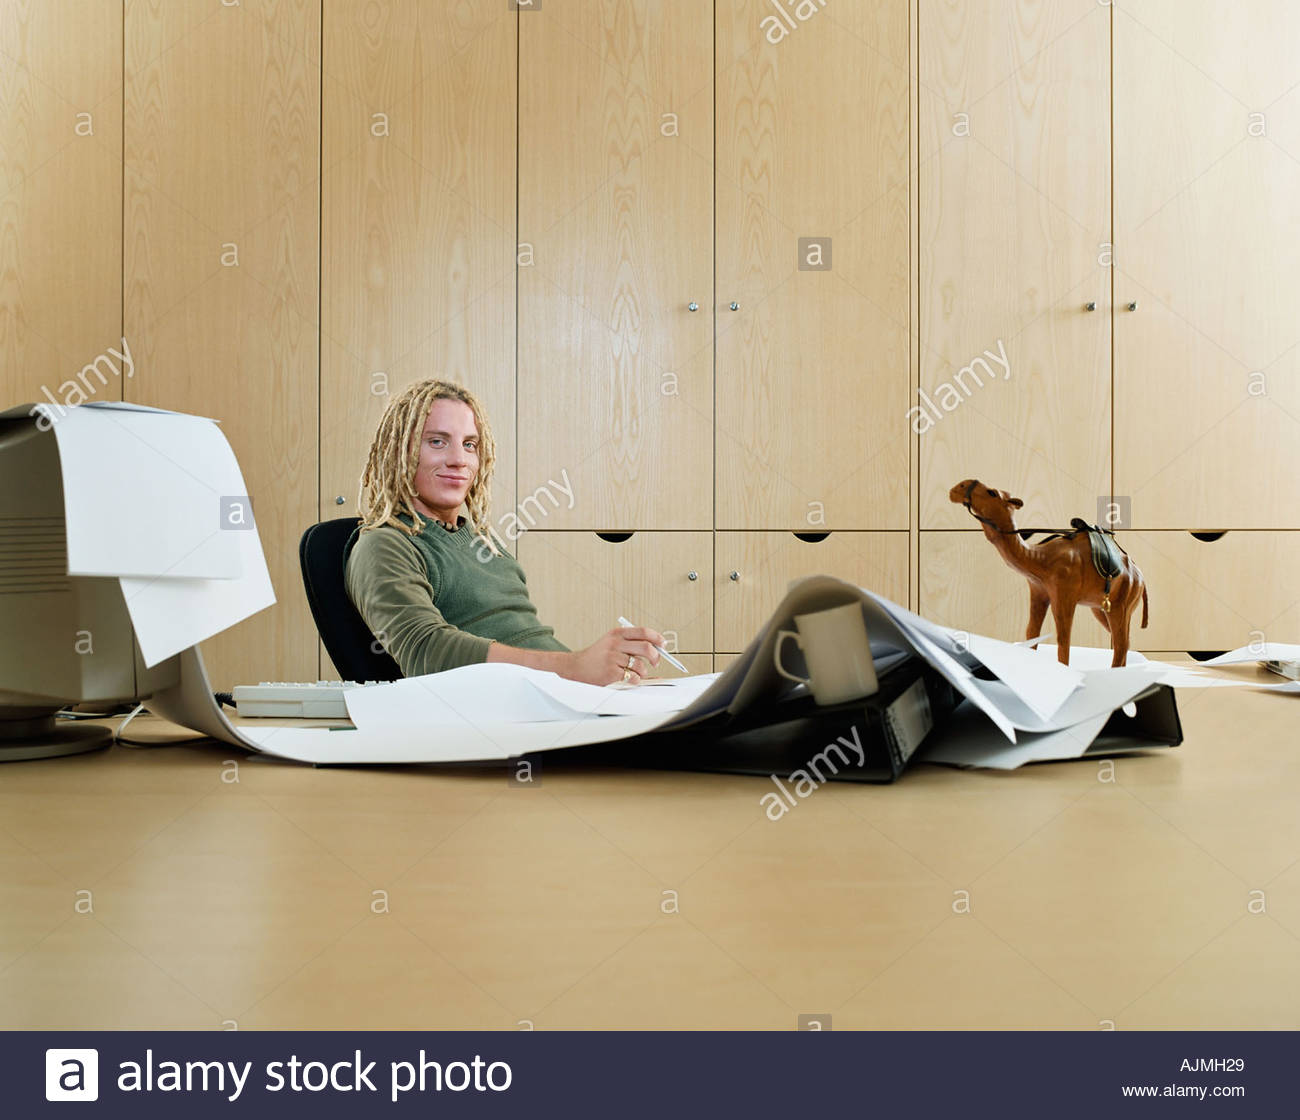 Man with messy desk - Stock Image